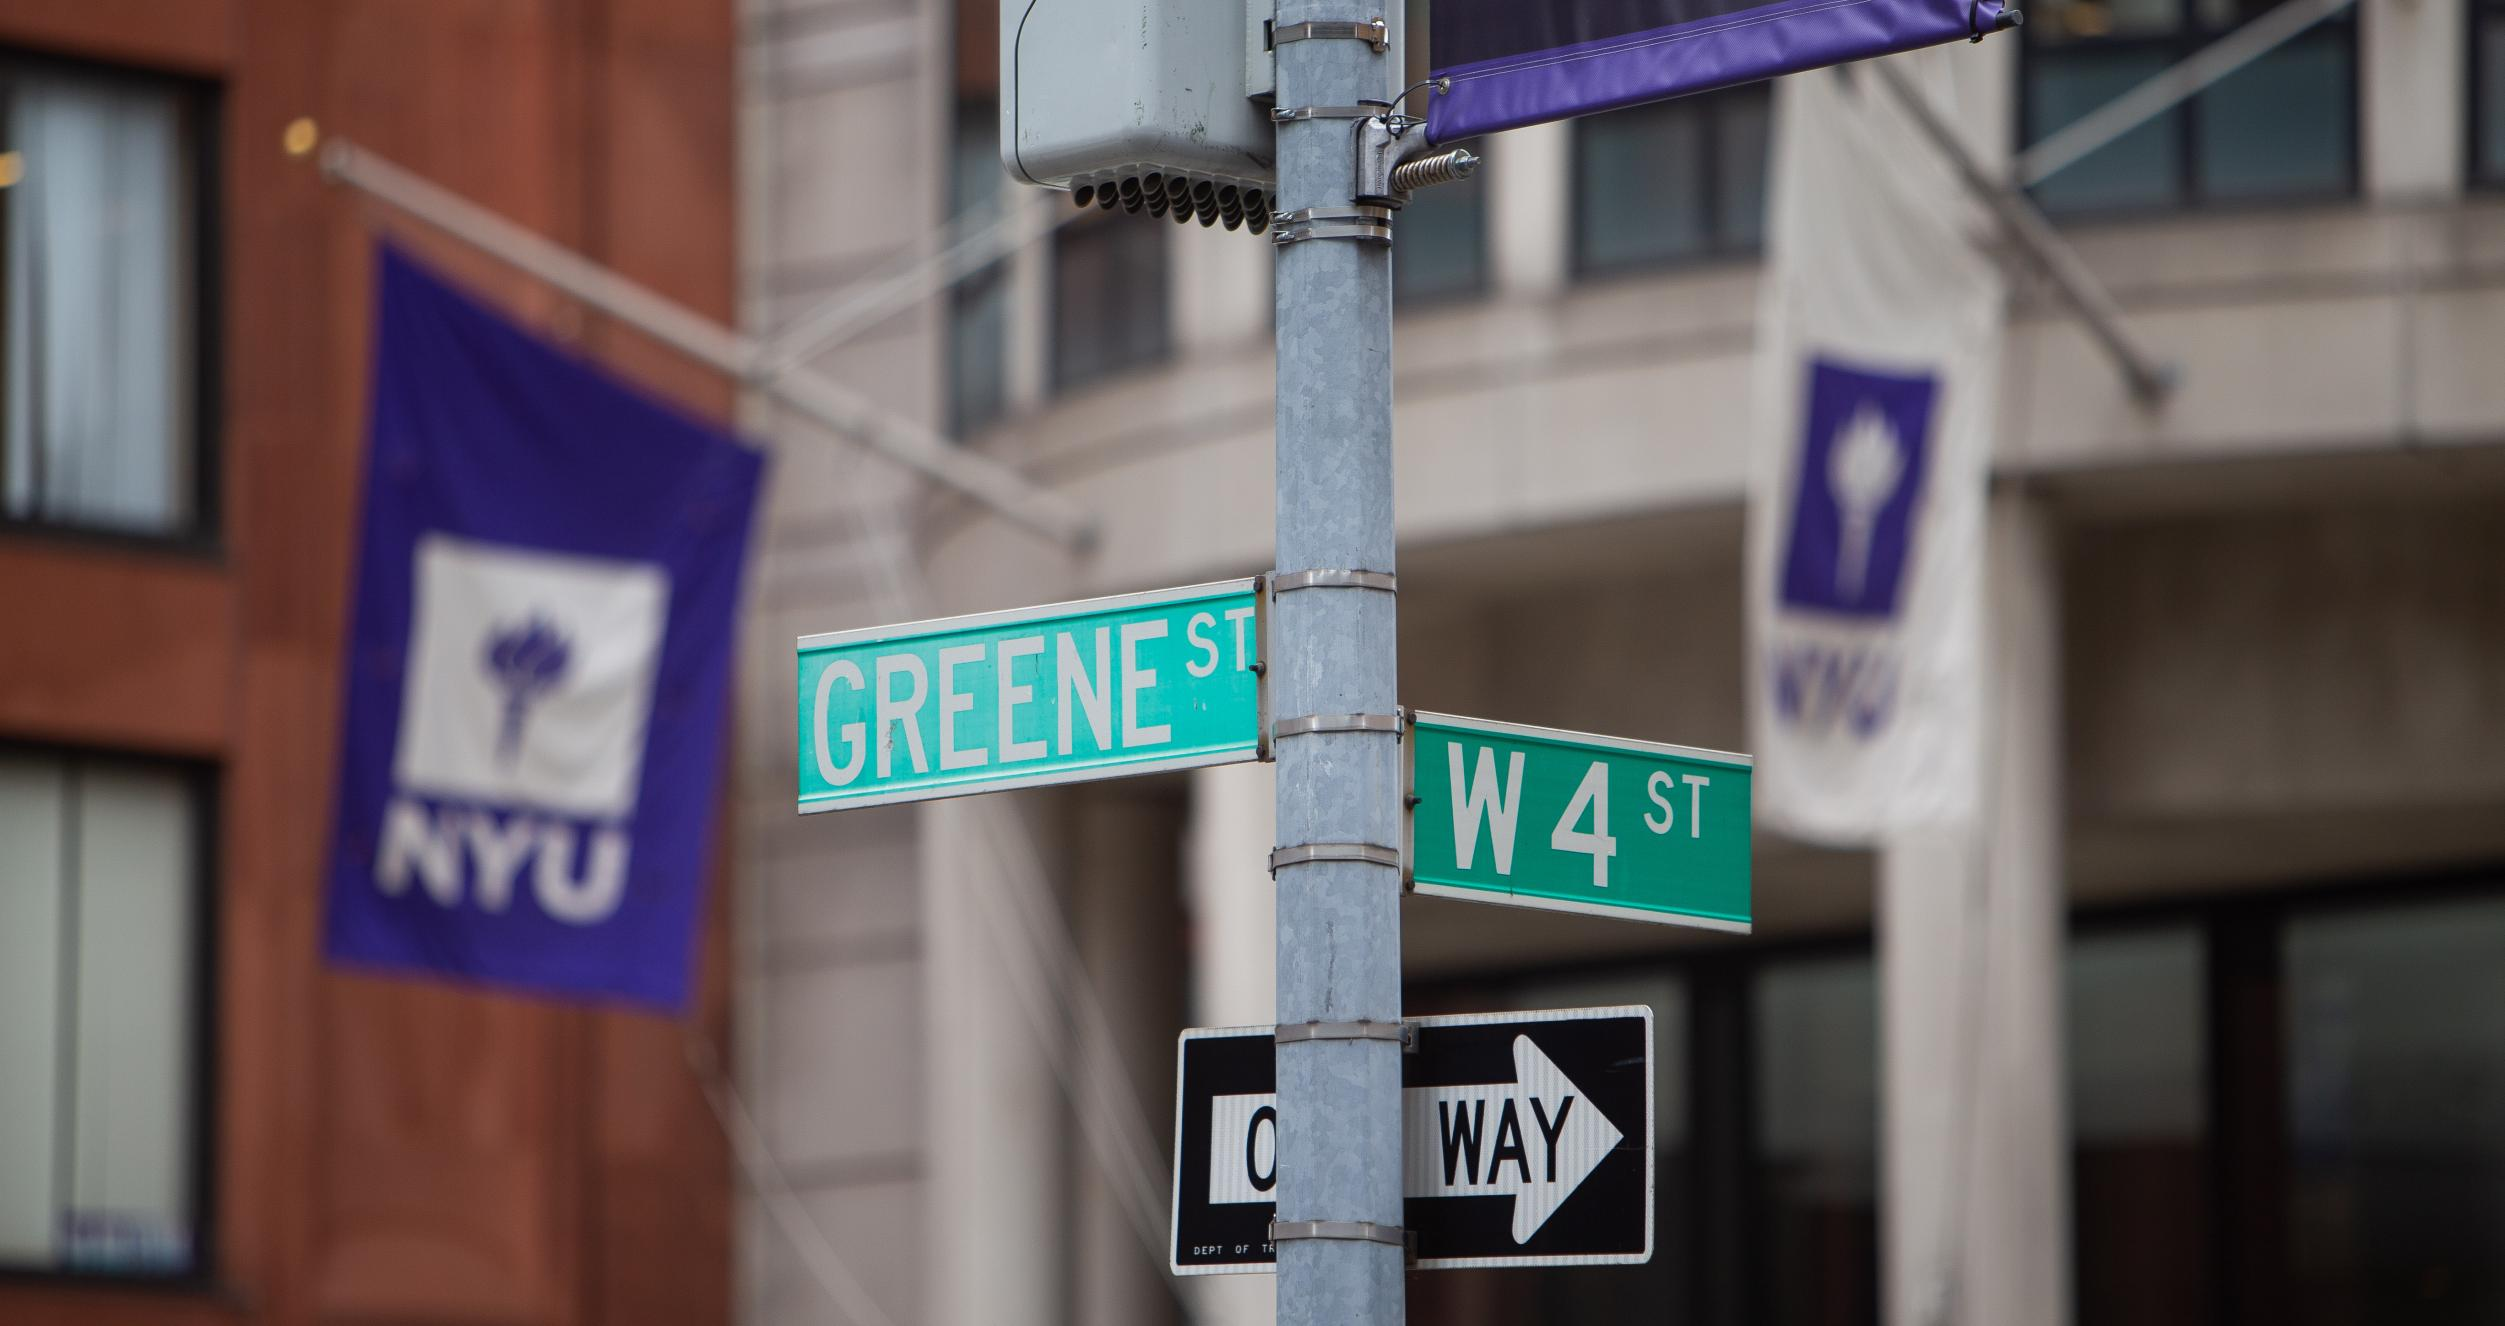 Street signs for Greene St and W 4th with front entrance of KMC in the background